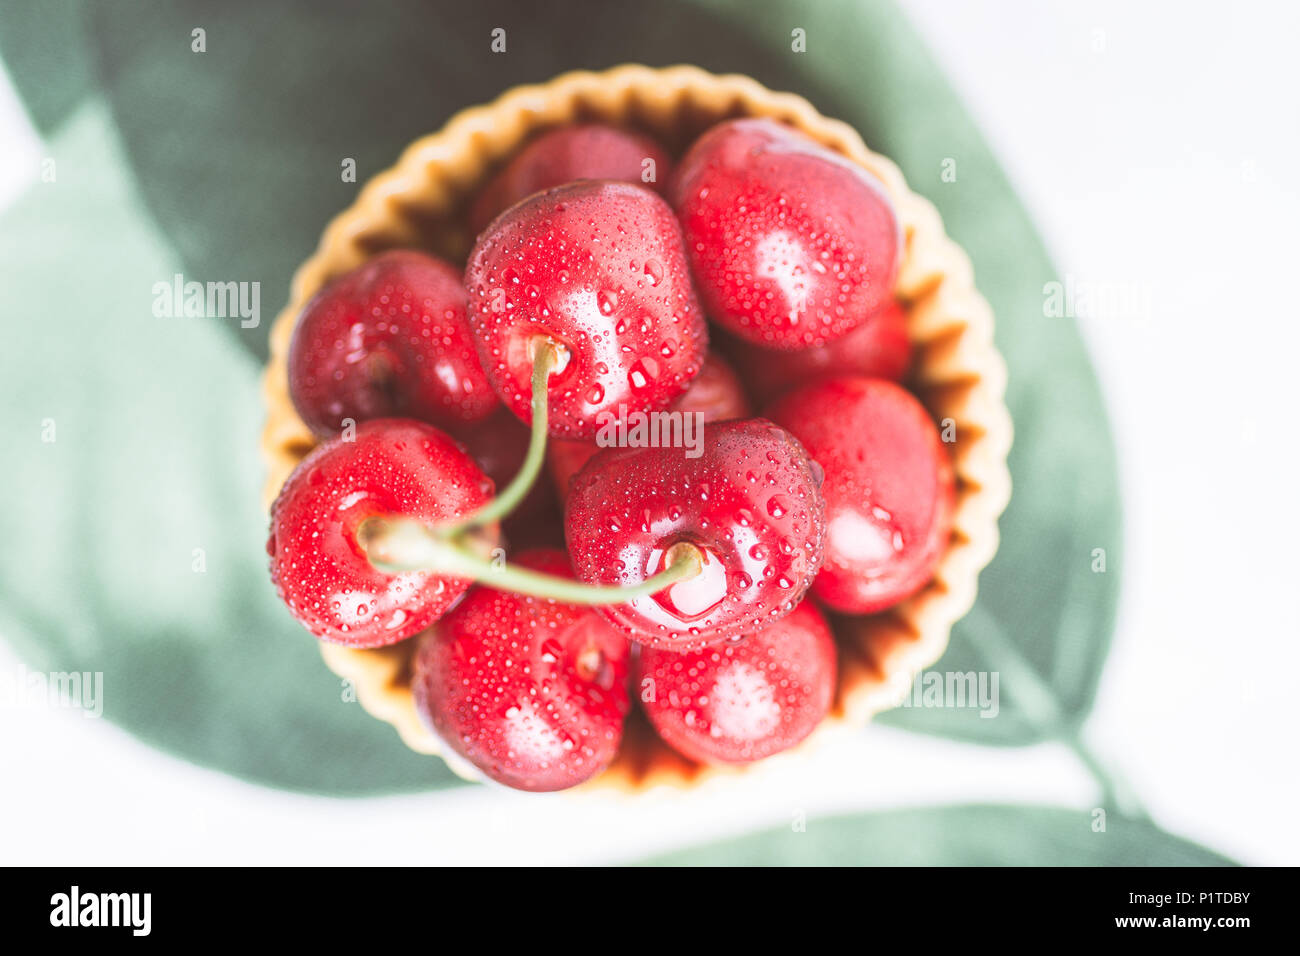 Splashed Red Cherries as Summer Concept - Stock Image